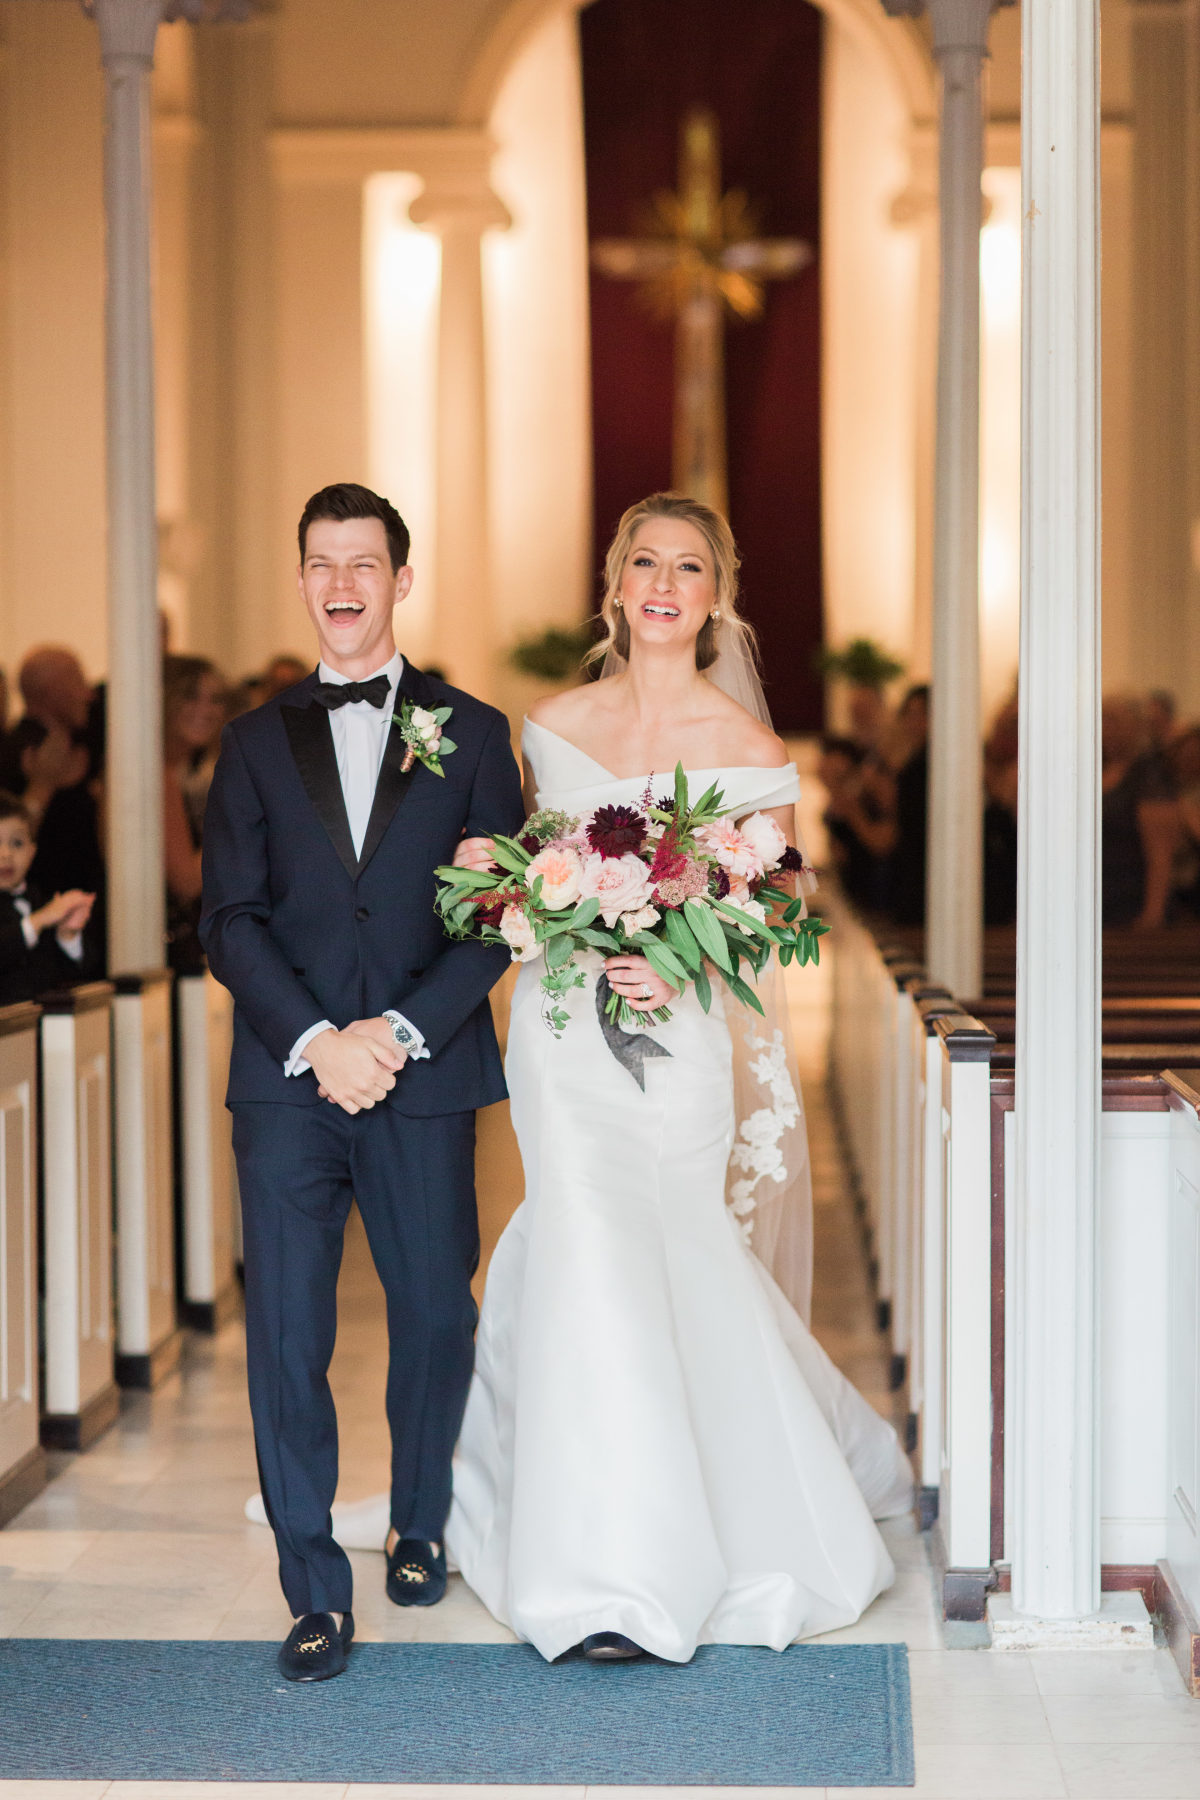 """It feels like so many weddings rush the ceremony part in favor of focusing on the party aspect of a wedding,"" said Erica. ""But to me, the ceremony honors the true reason for the day in pledging your partnership to your new spouse.""(Image: Abby Grace Photography/ abbygracephotography.com)"